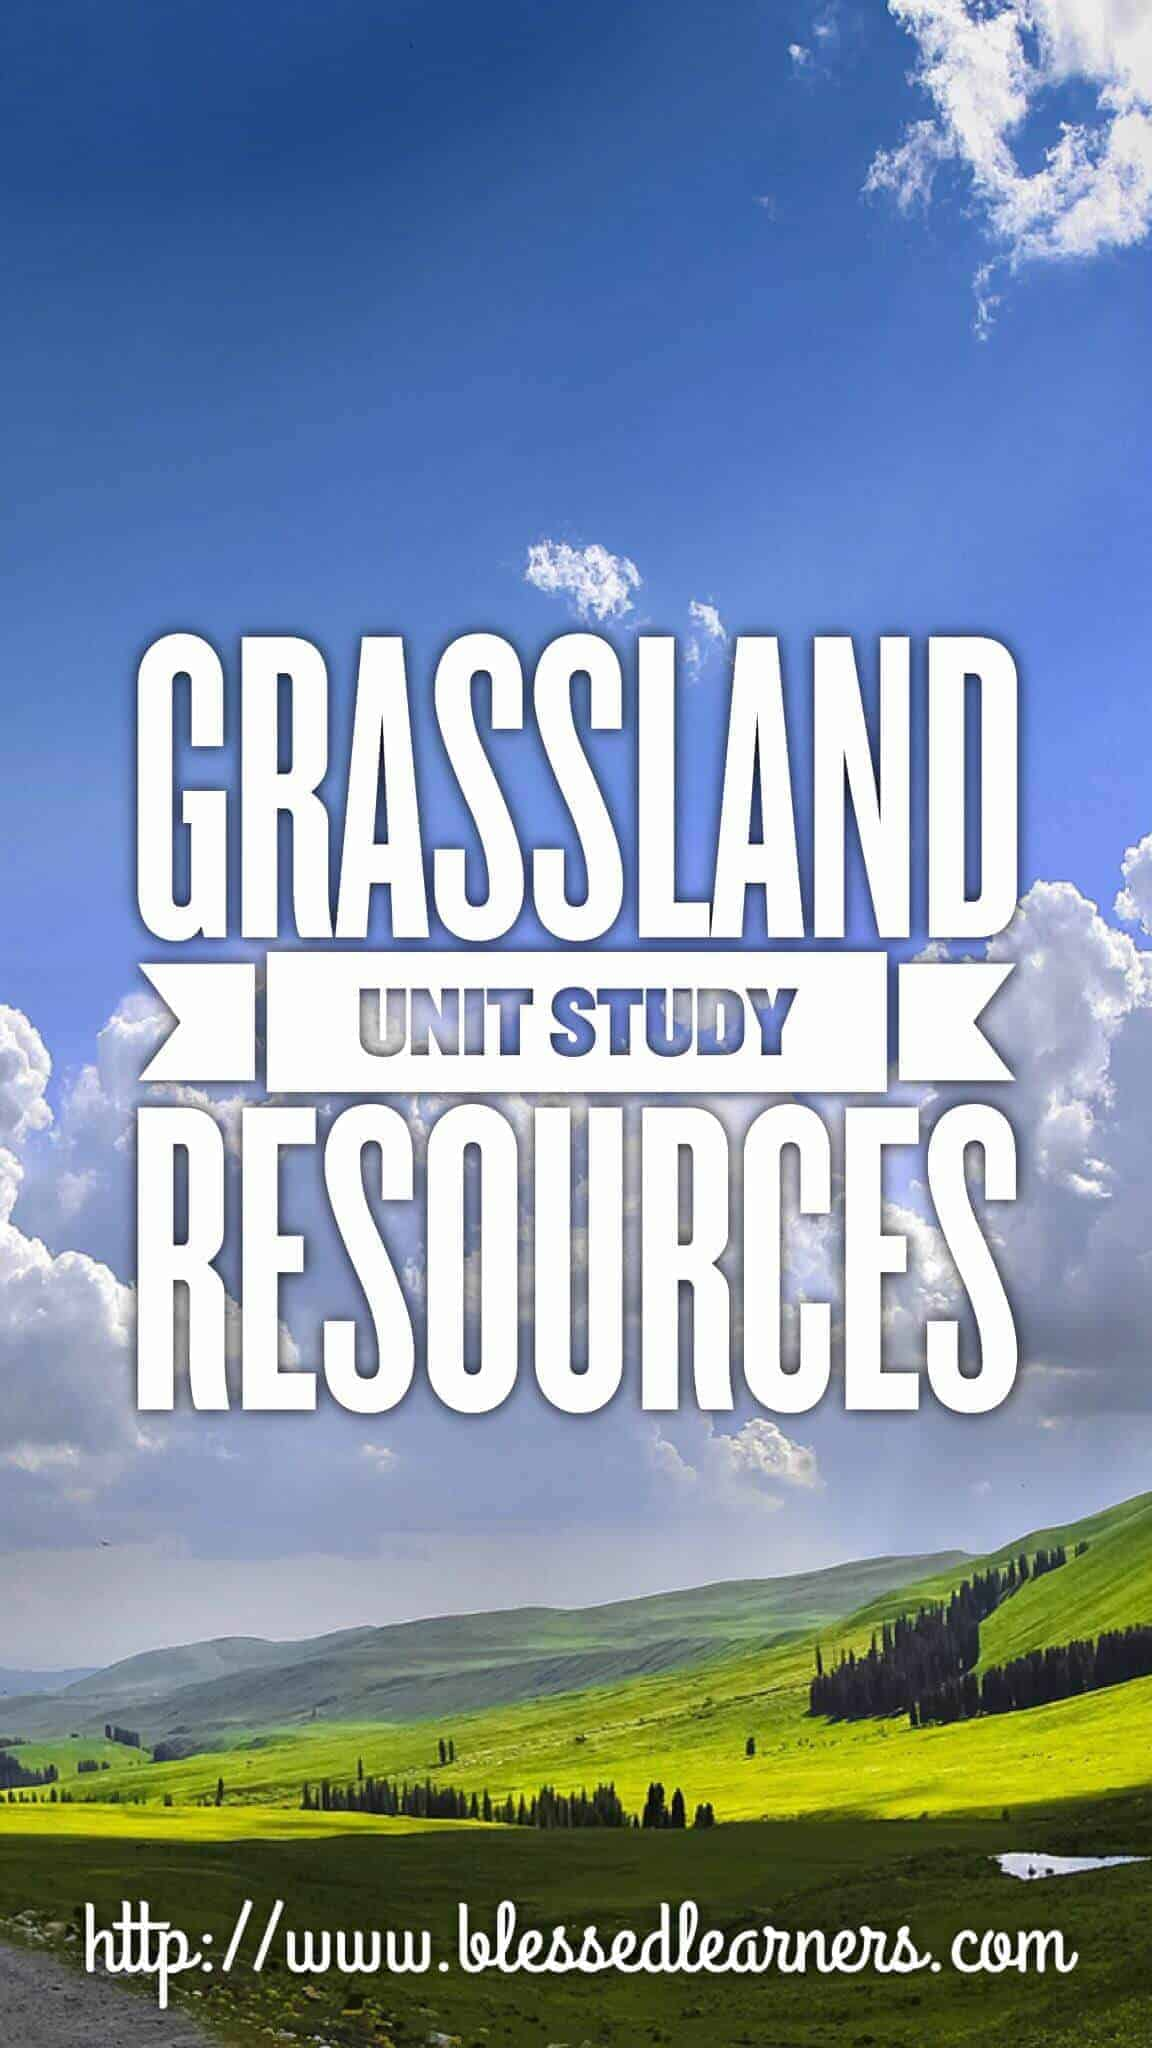 Grassland Unit Study Resources